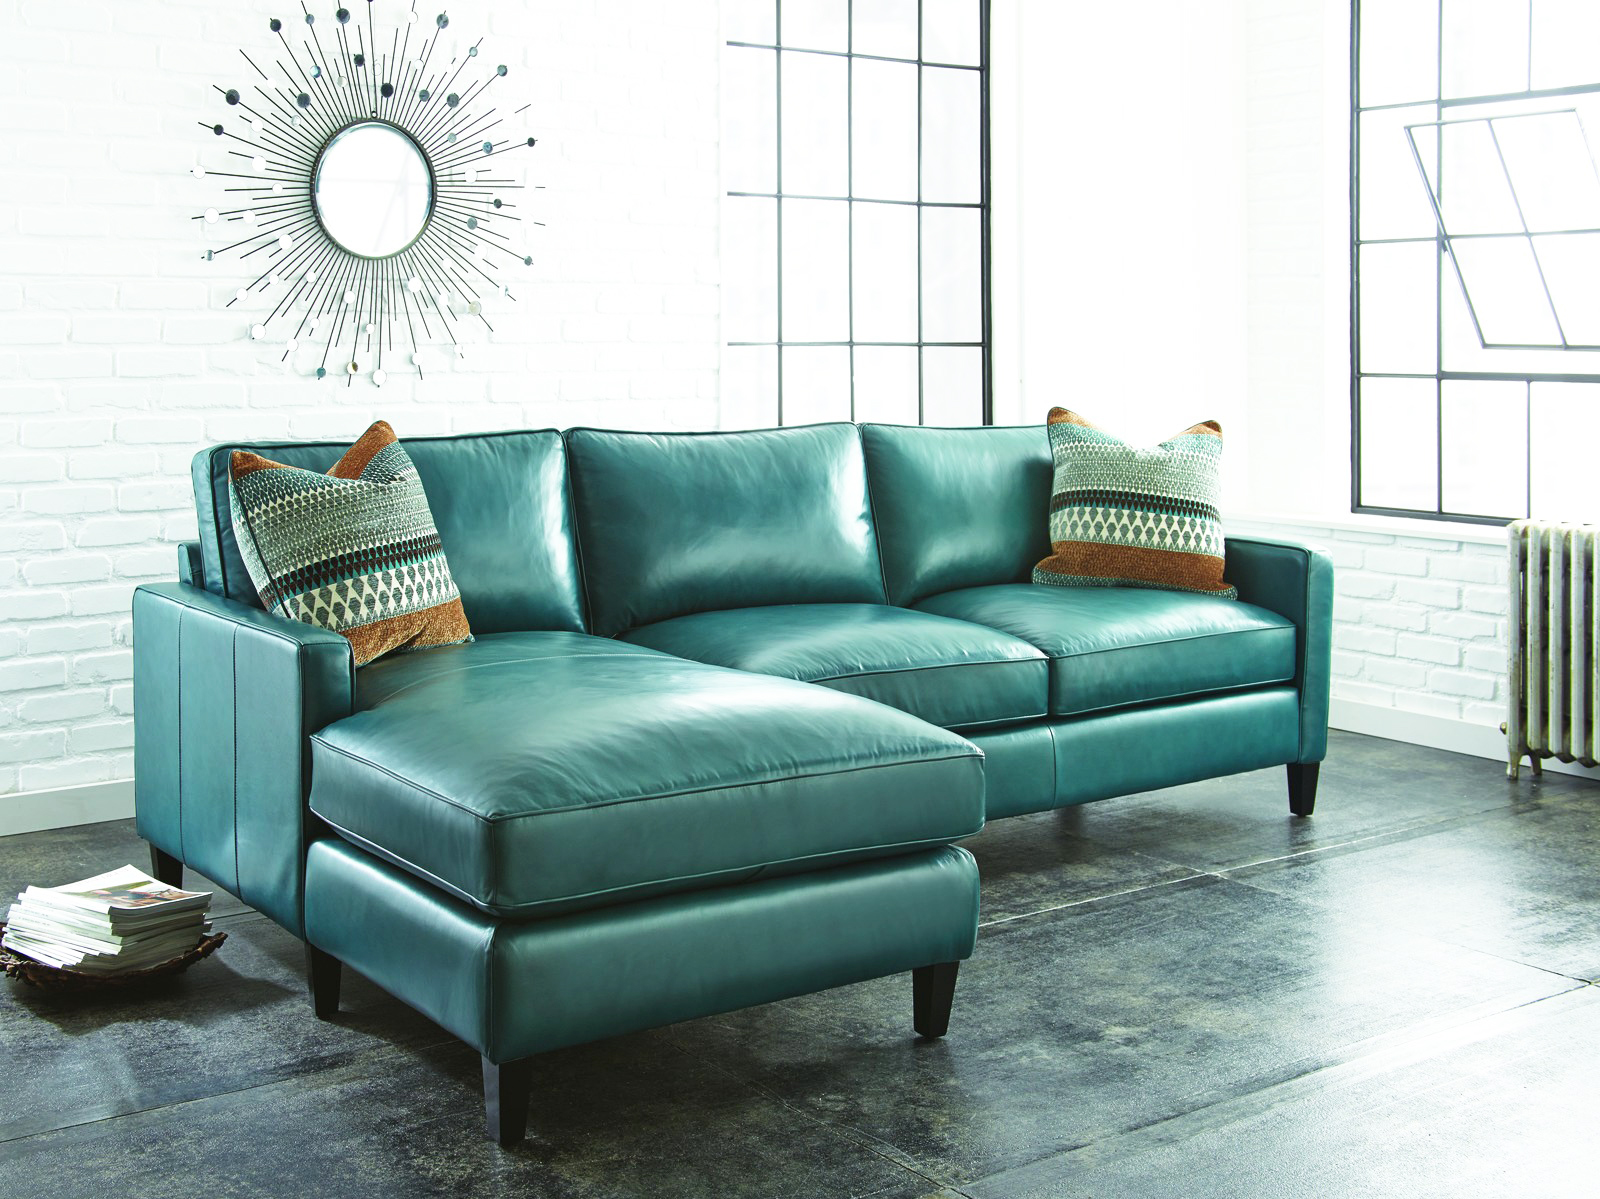 leather-furniture-in-cyan-modern-leather-sofas-for-leather-sectional-living-room-furniture-ideas